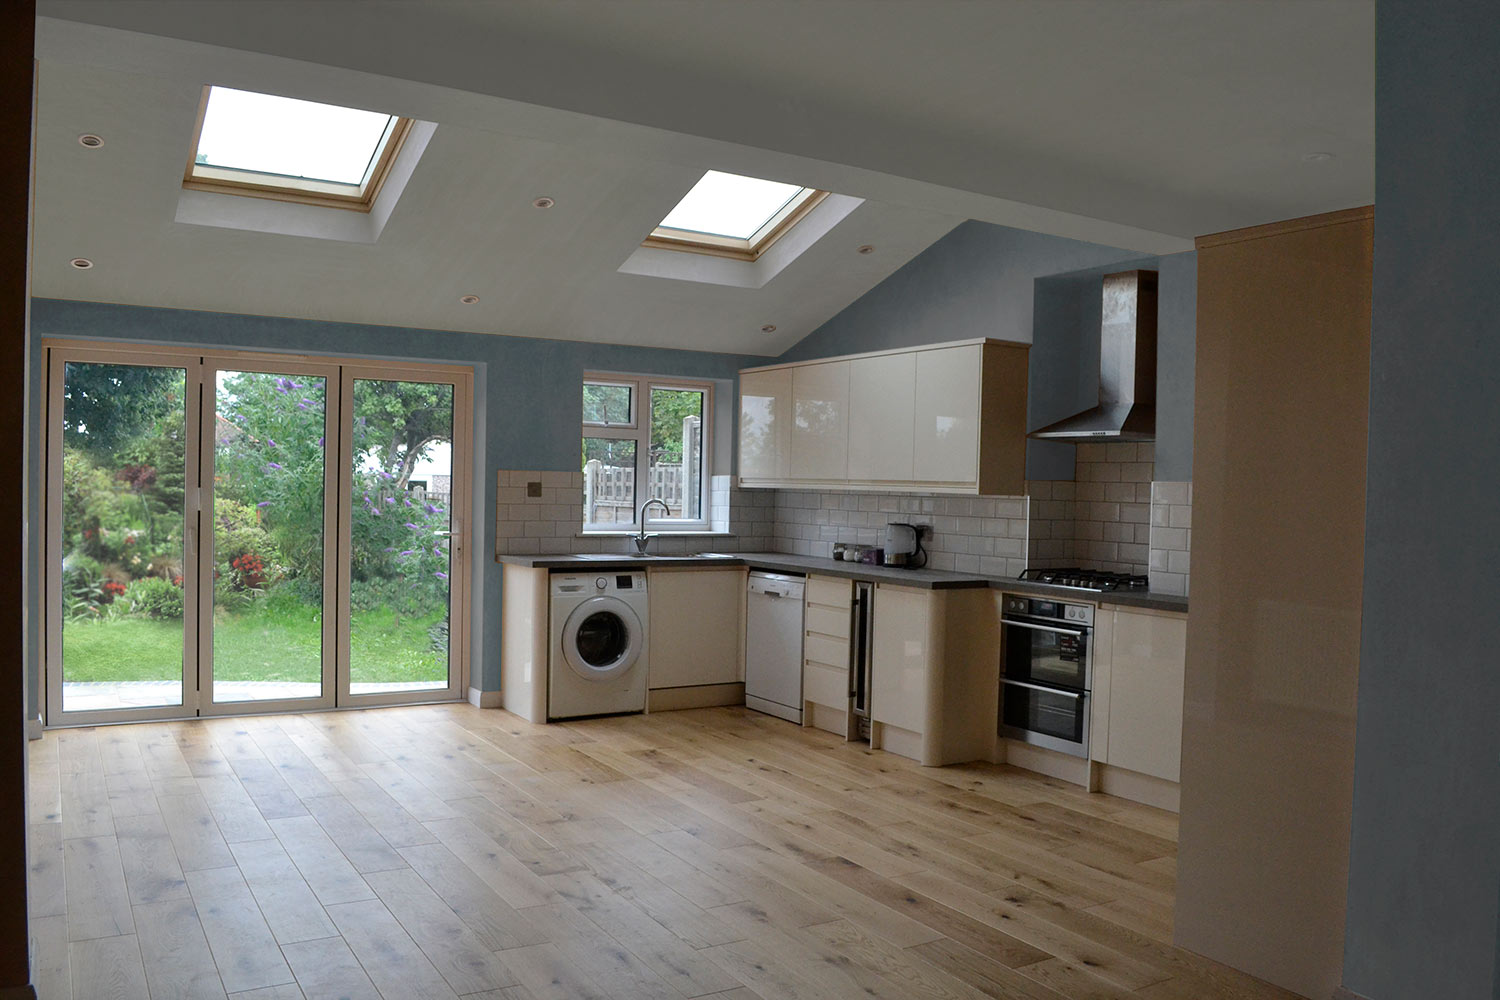 Rear extension with new kitchen.